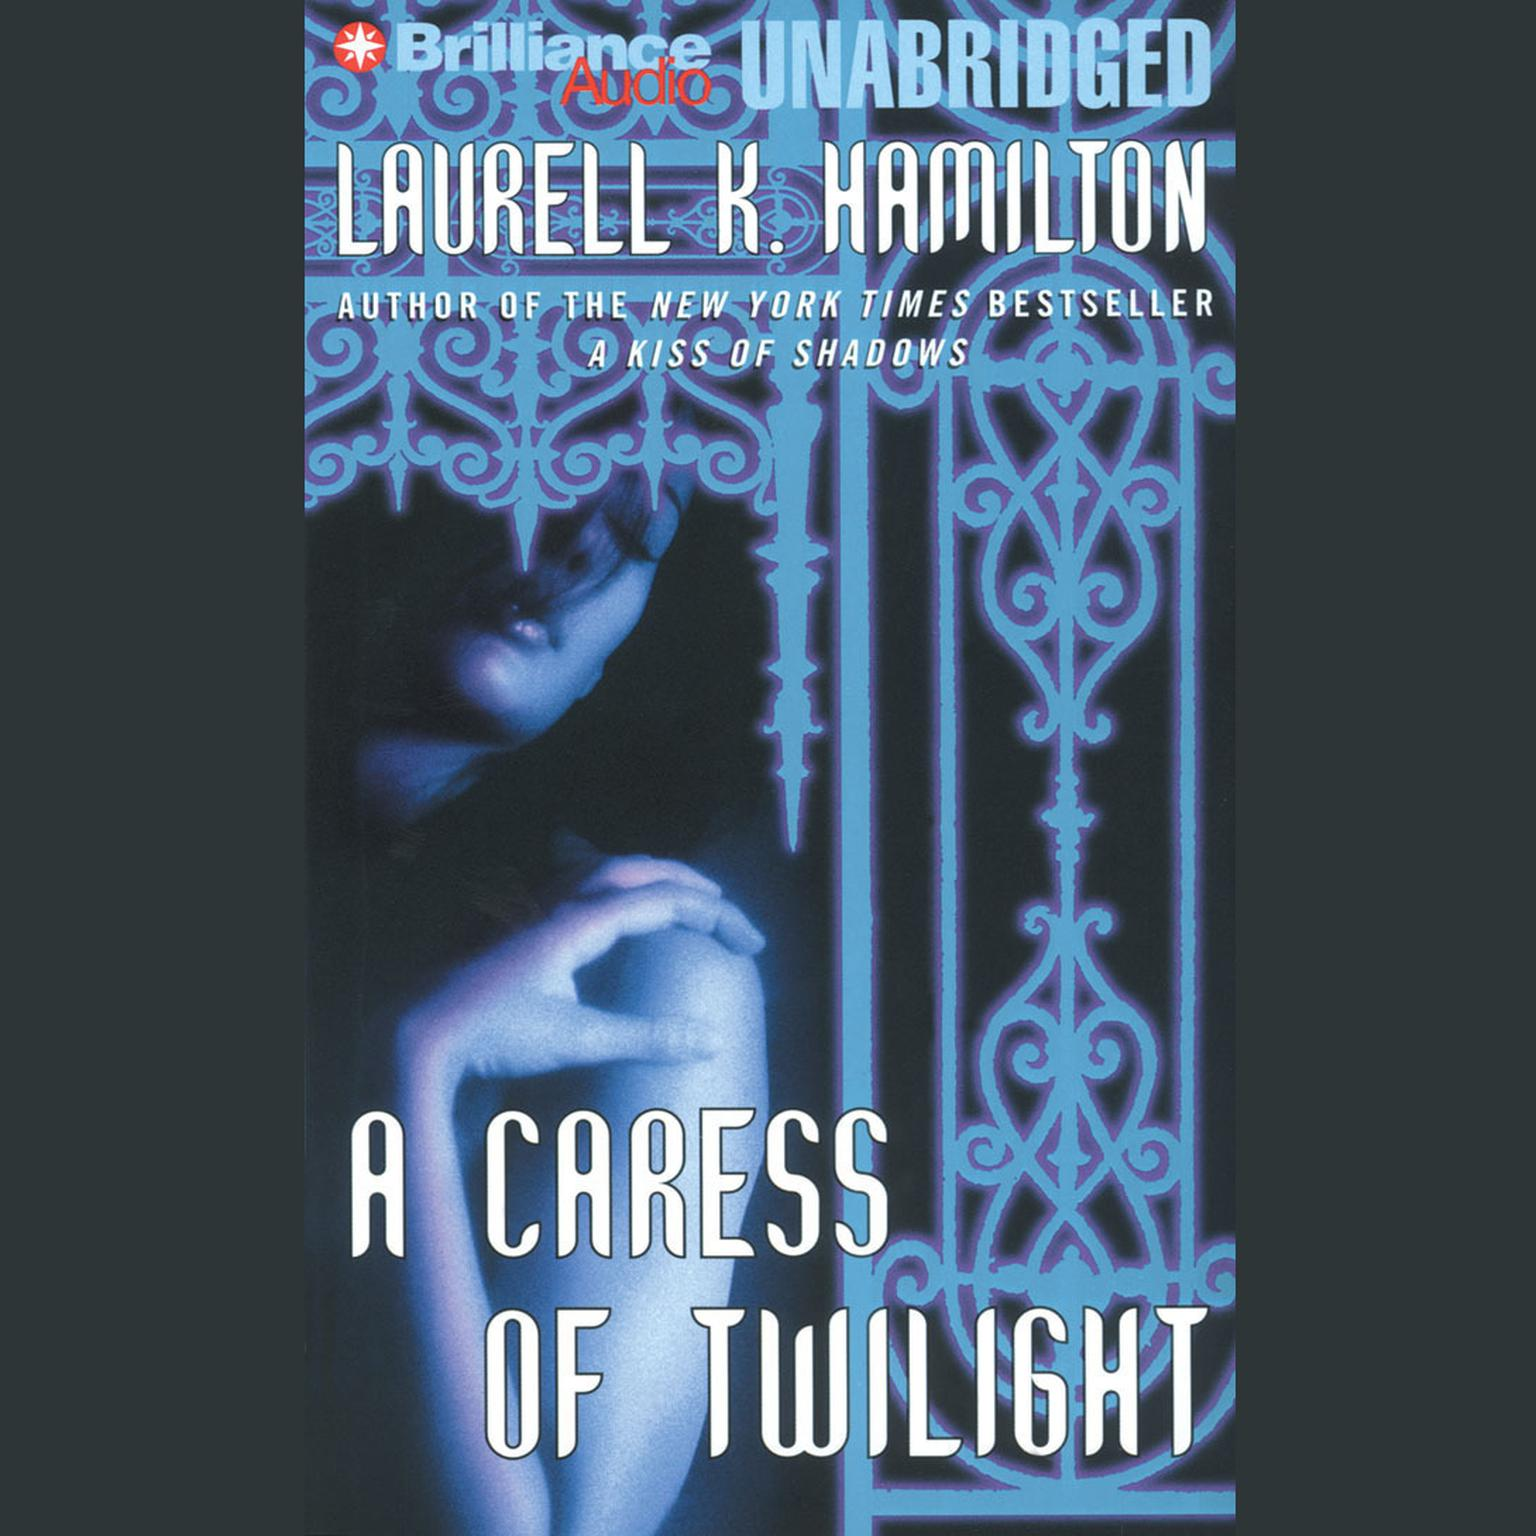 Printable A Caress of Twilight Audiobook Cover Art